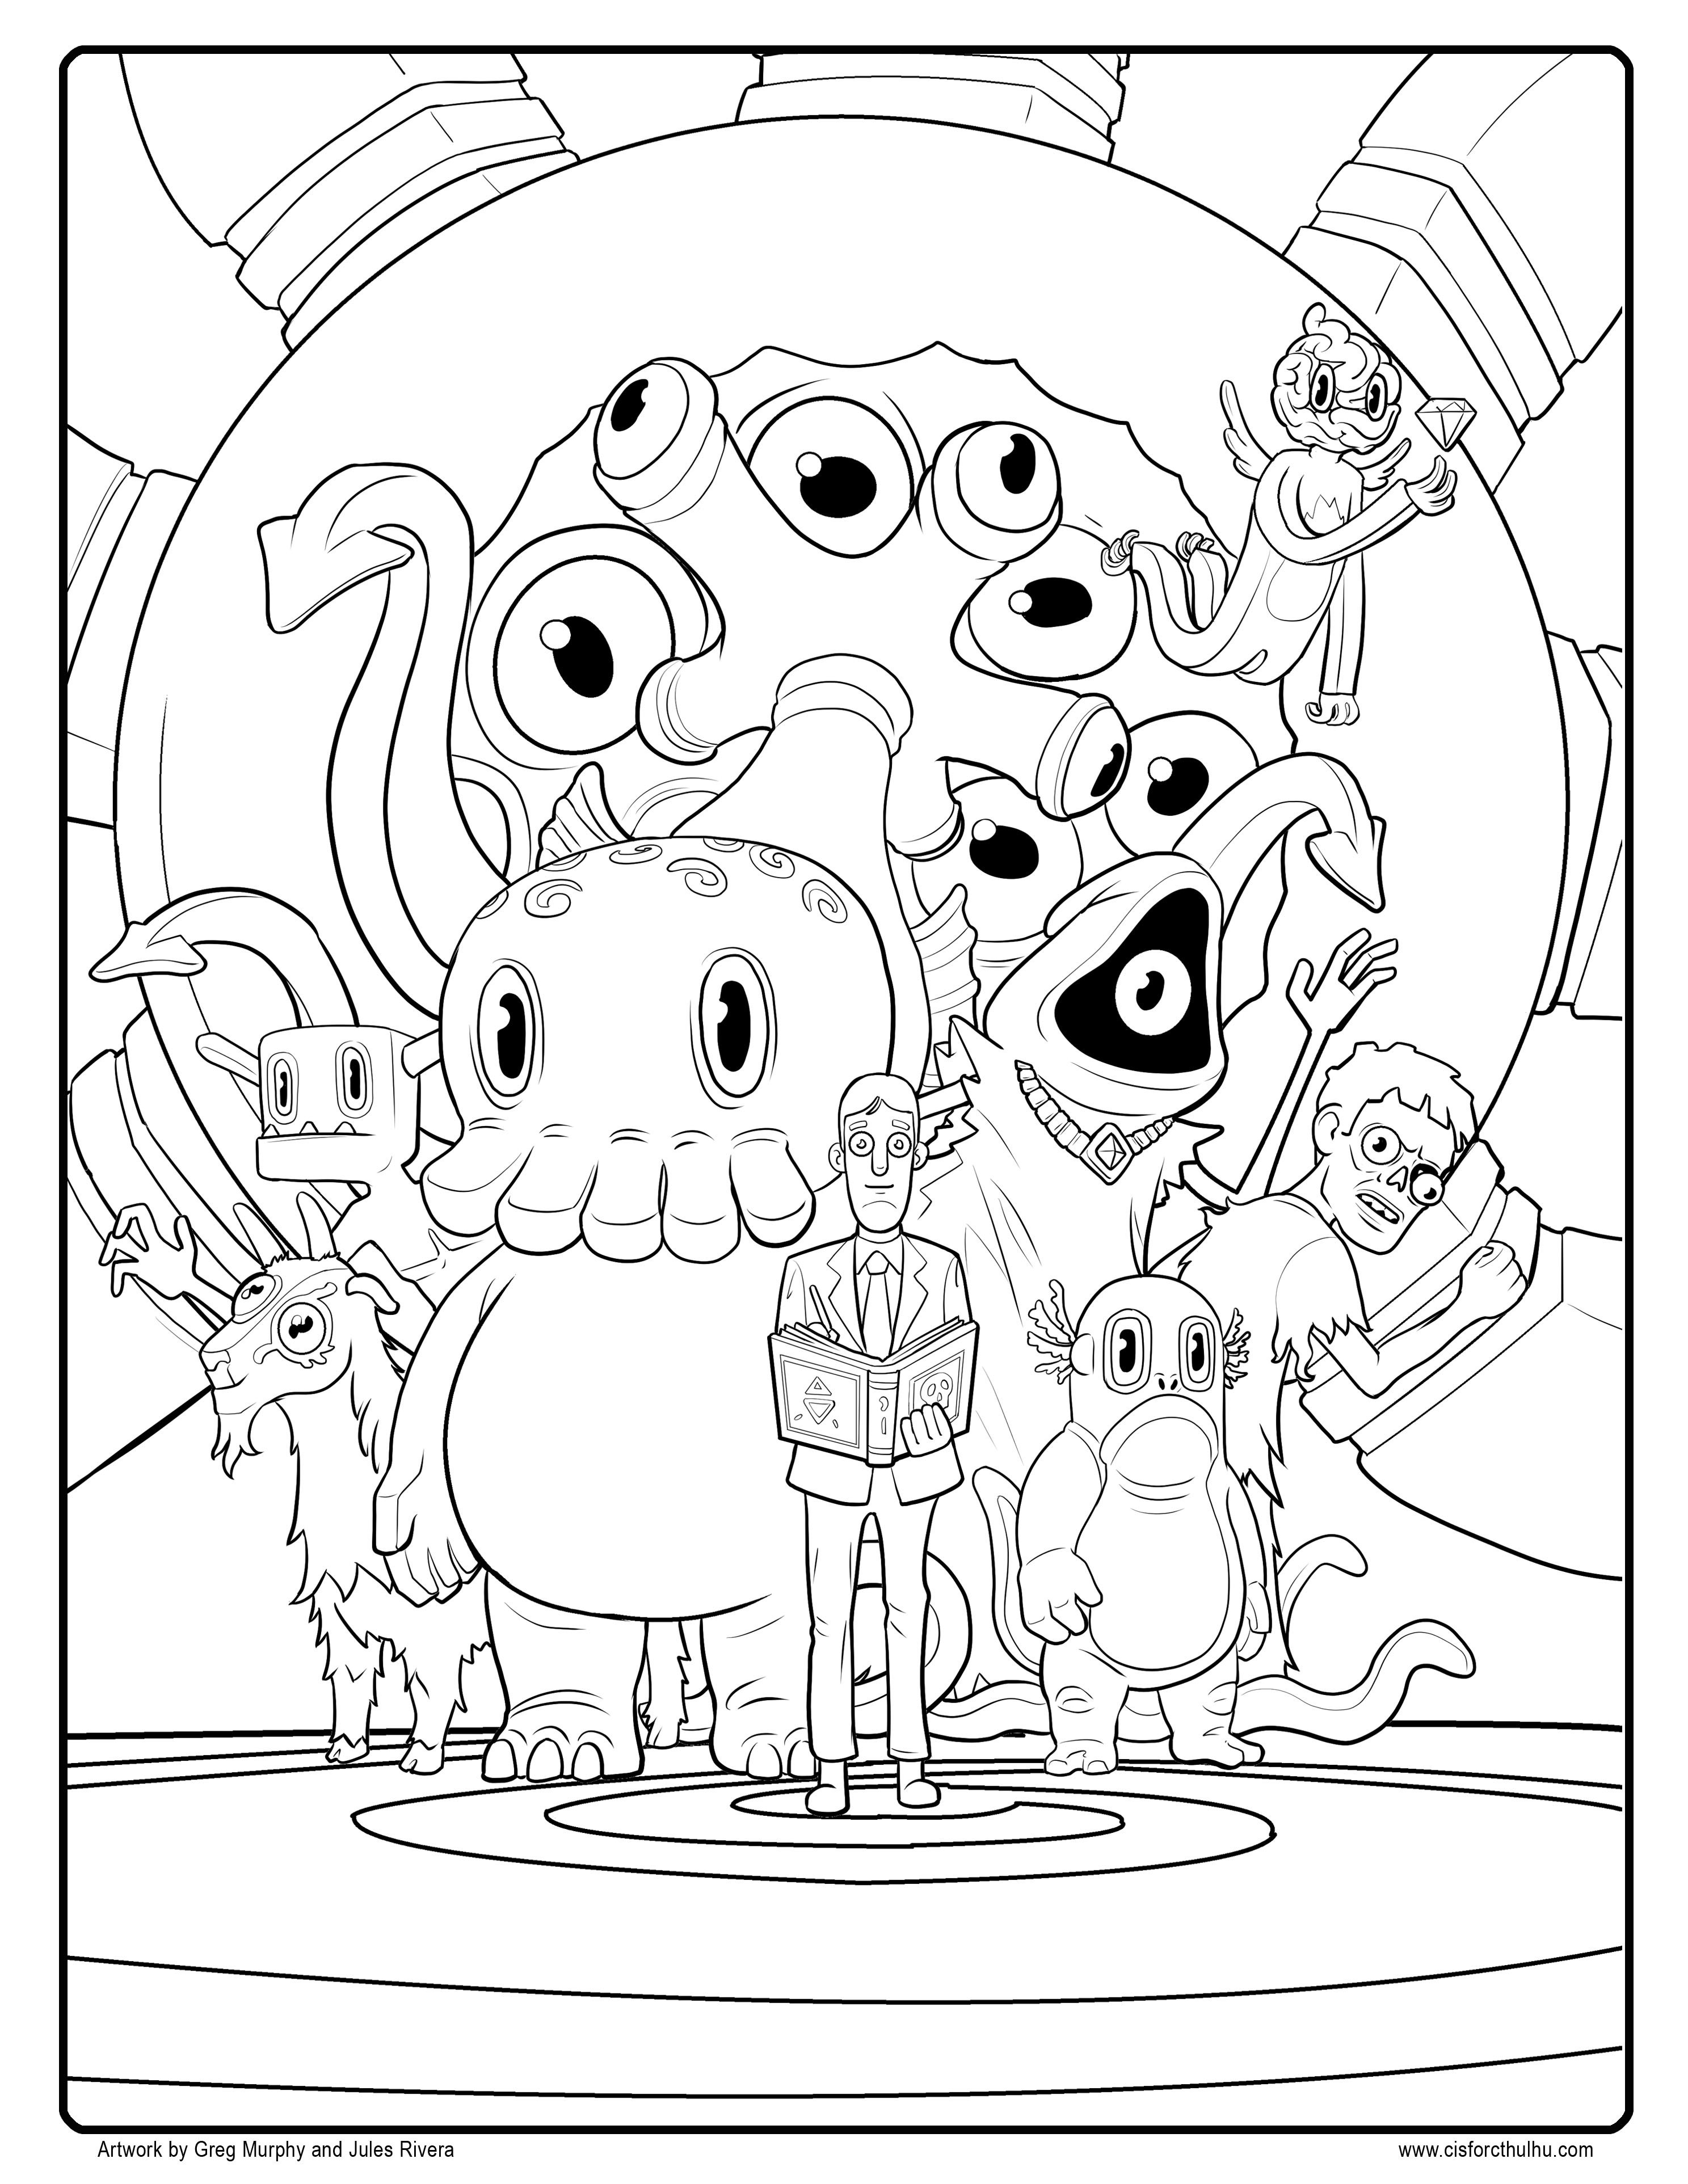 free bible coloring pages to print Download-Kawaii Coloring Pages Inspirational Kawaii Coloring Pages Od Free 20 Bible Verse Coloring Pages — 10-p